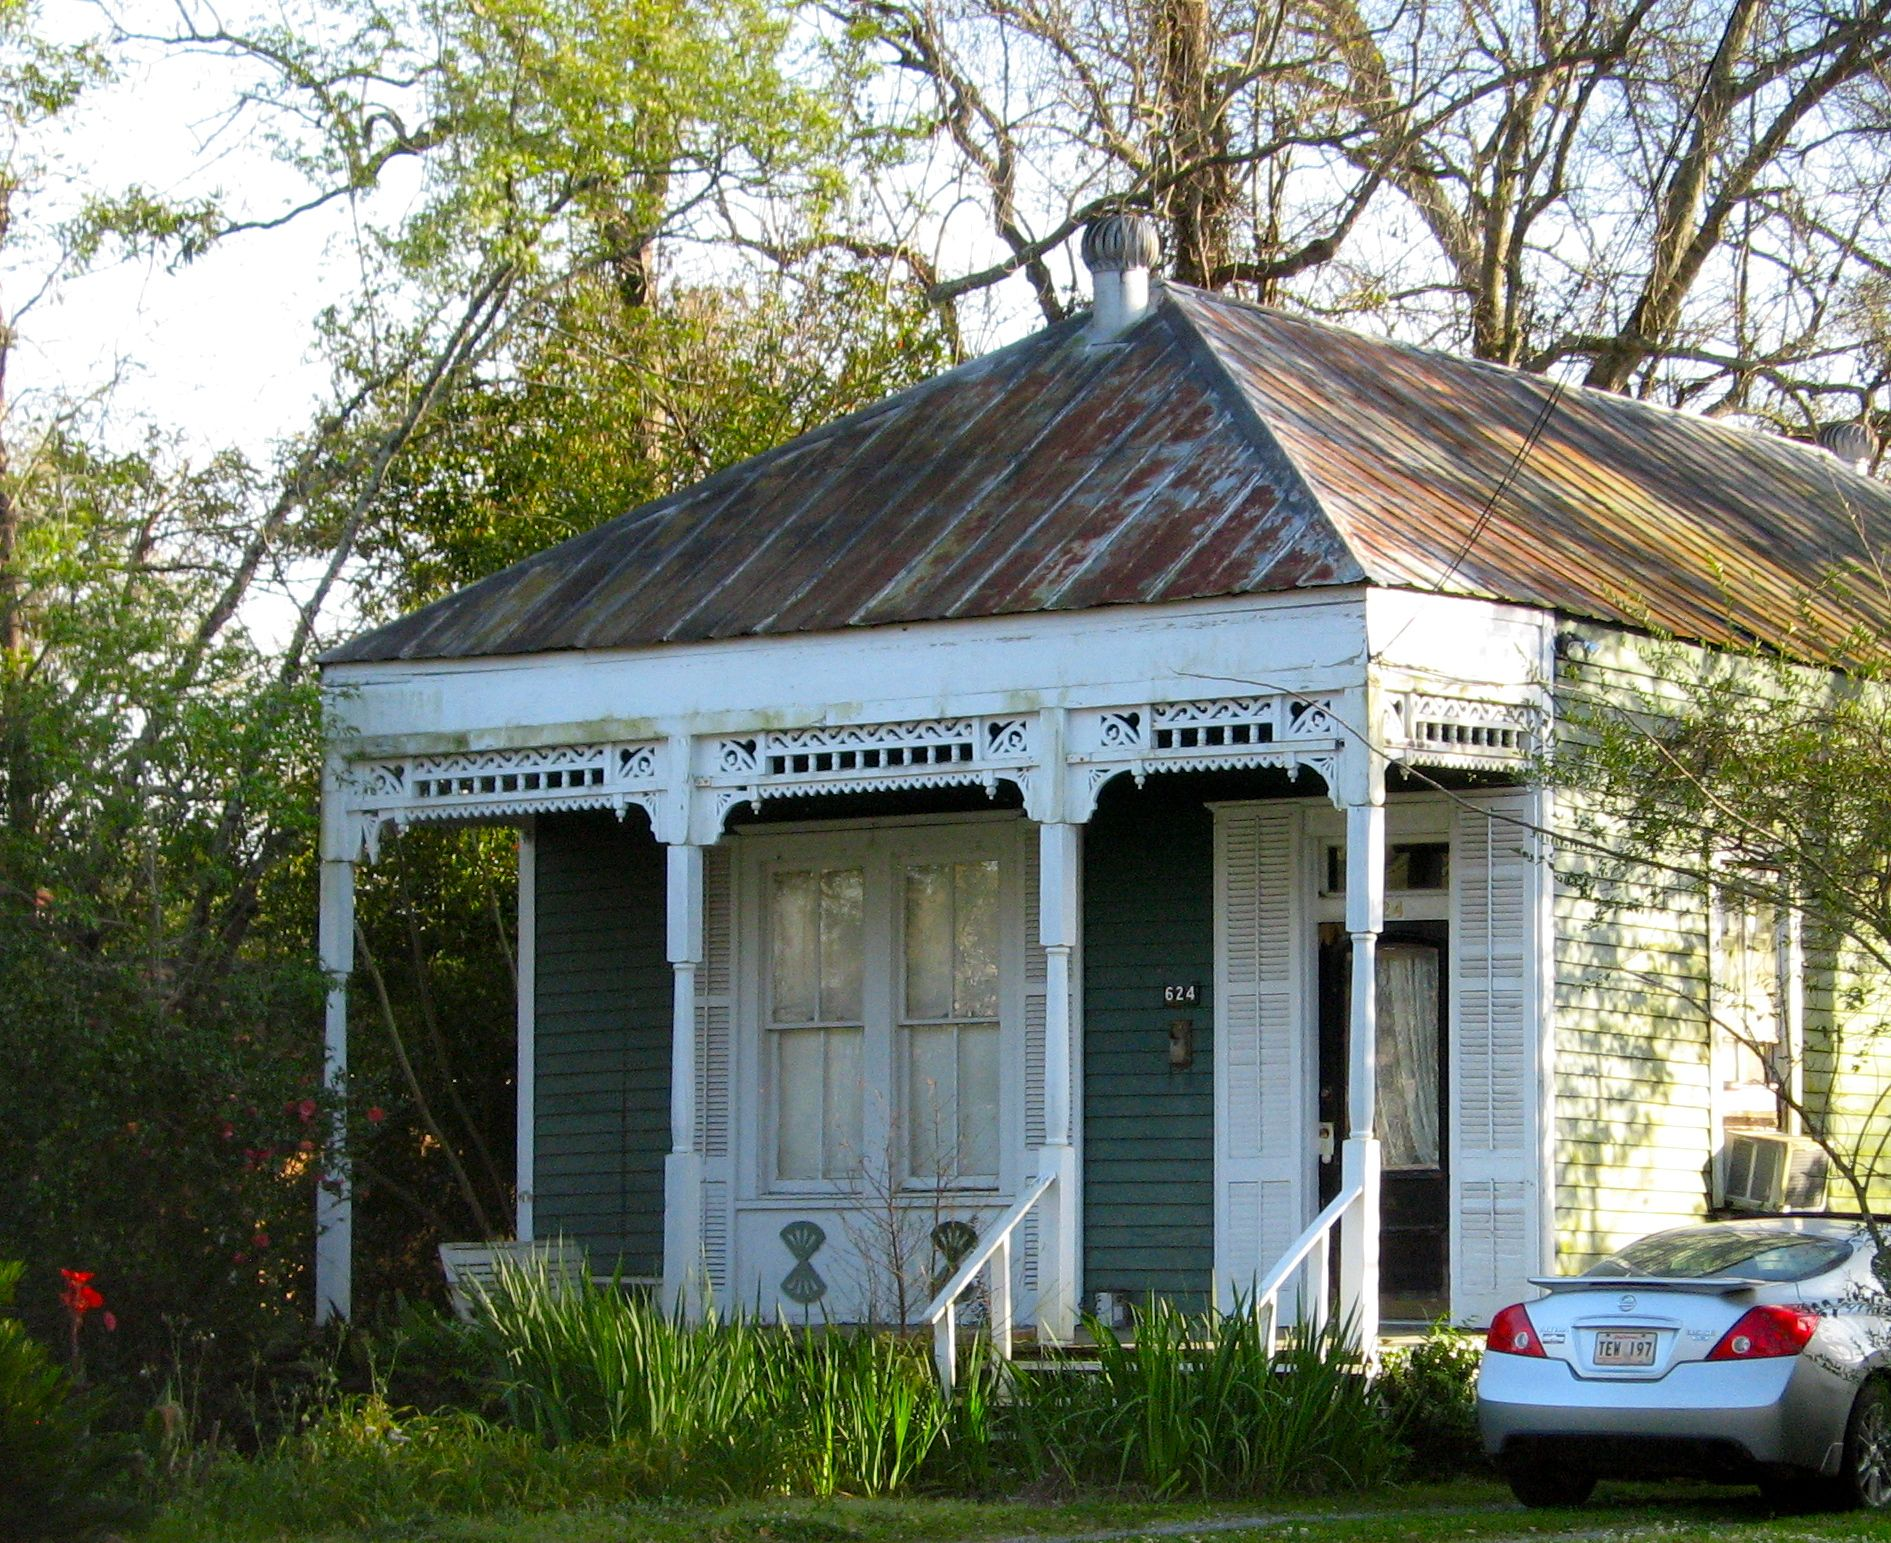 From Dreams Write From Where You Dream New Orleans Homes New Orleans Decor Southern Architecture